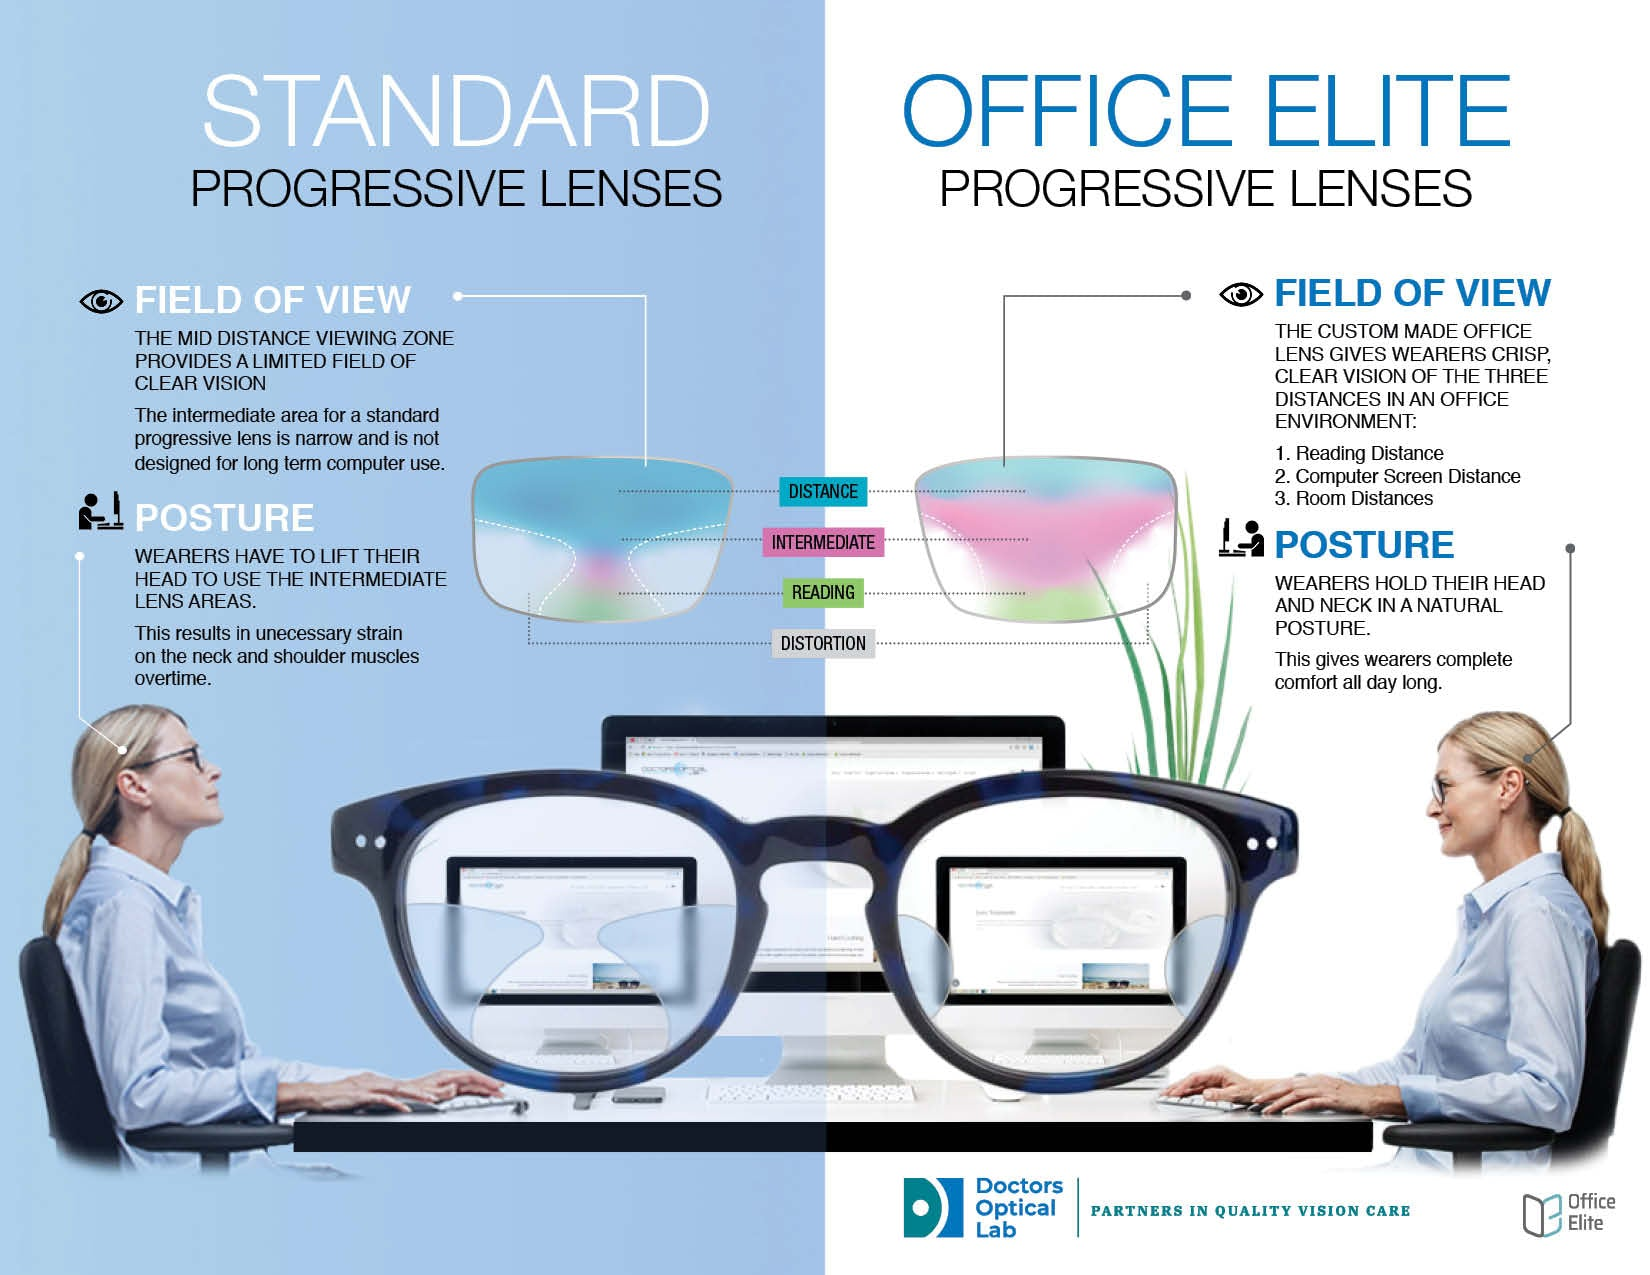 The differences in visual performance between a computer progressive lens and standard progressive lens